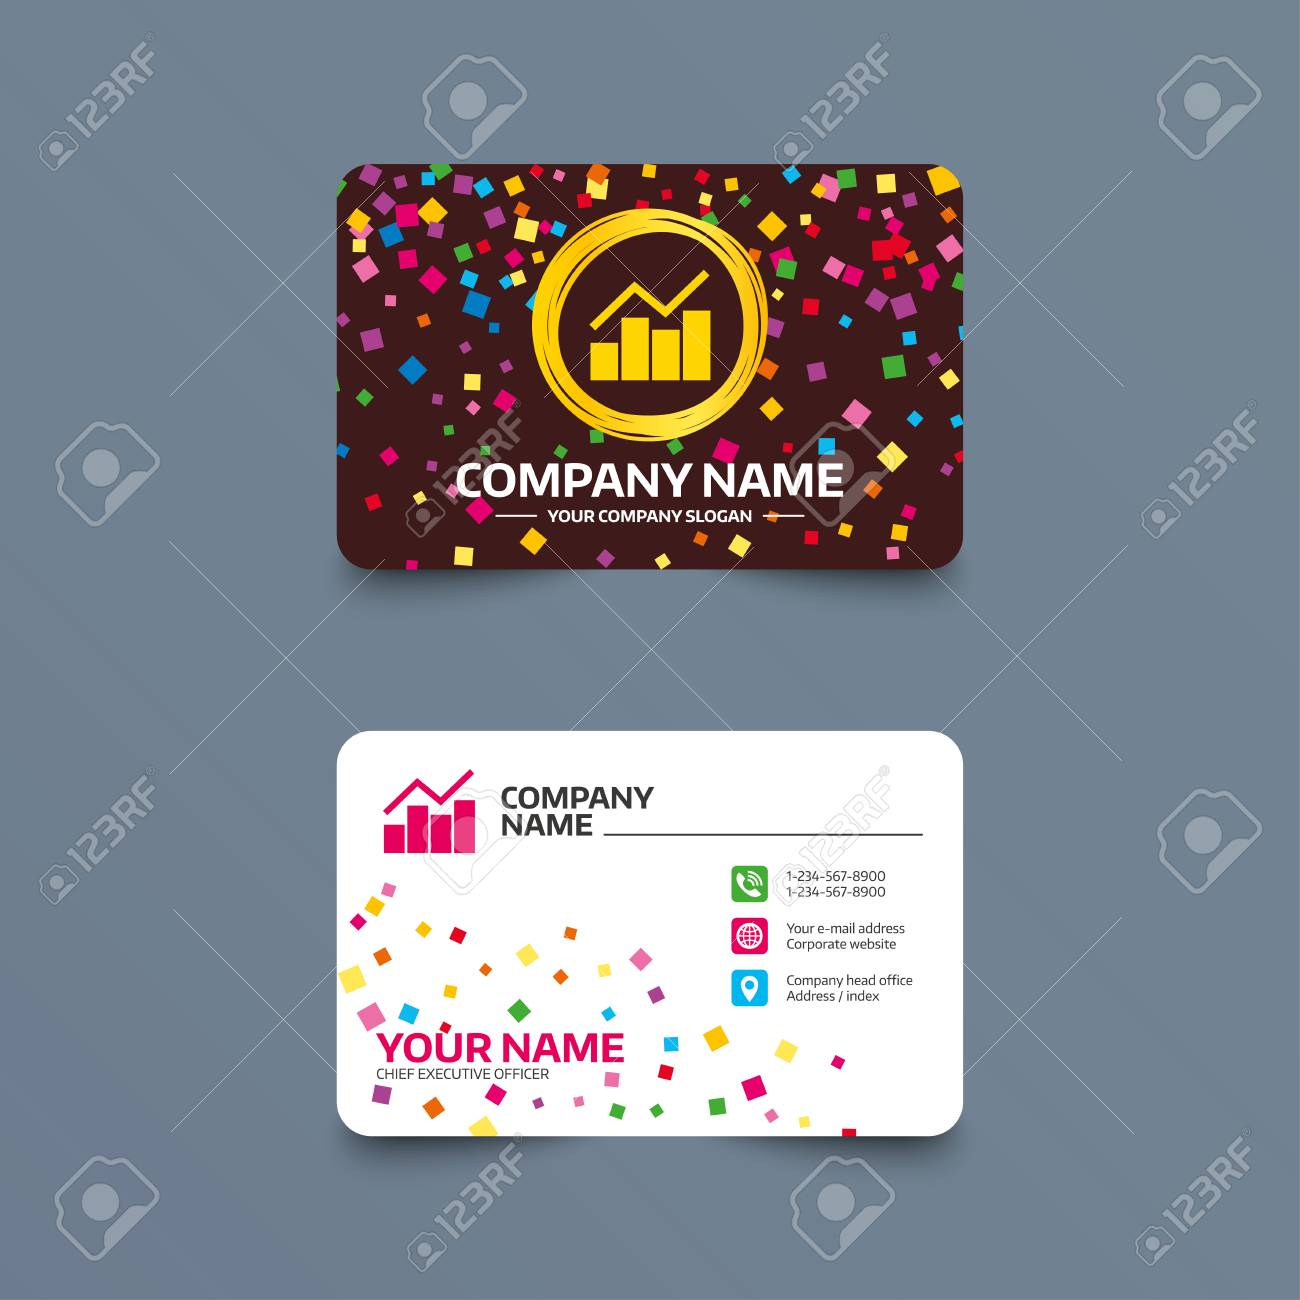 Business card template with confetti pieces graph chart sign business card template with confetti pieces graph chart sign icon diagram symbol statistics colourmoves